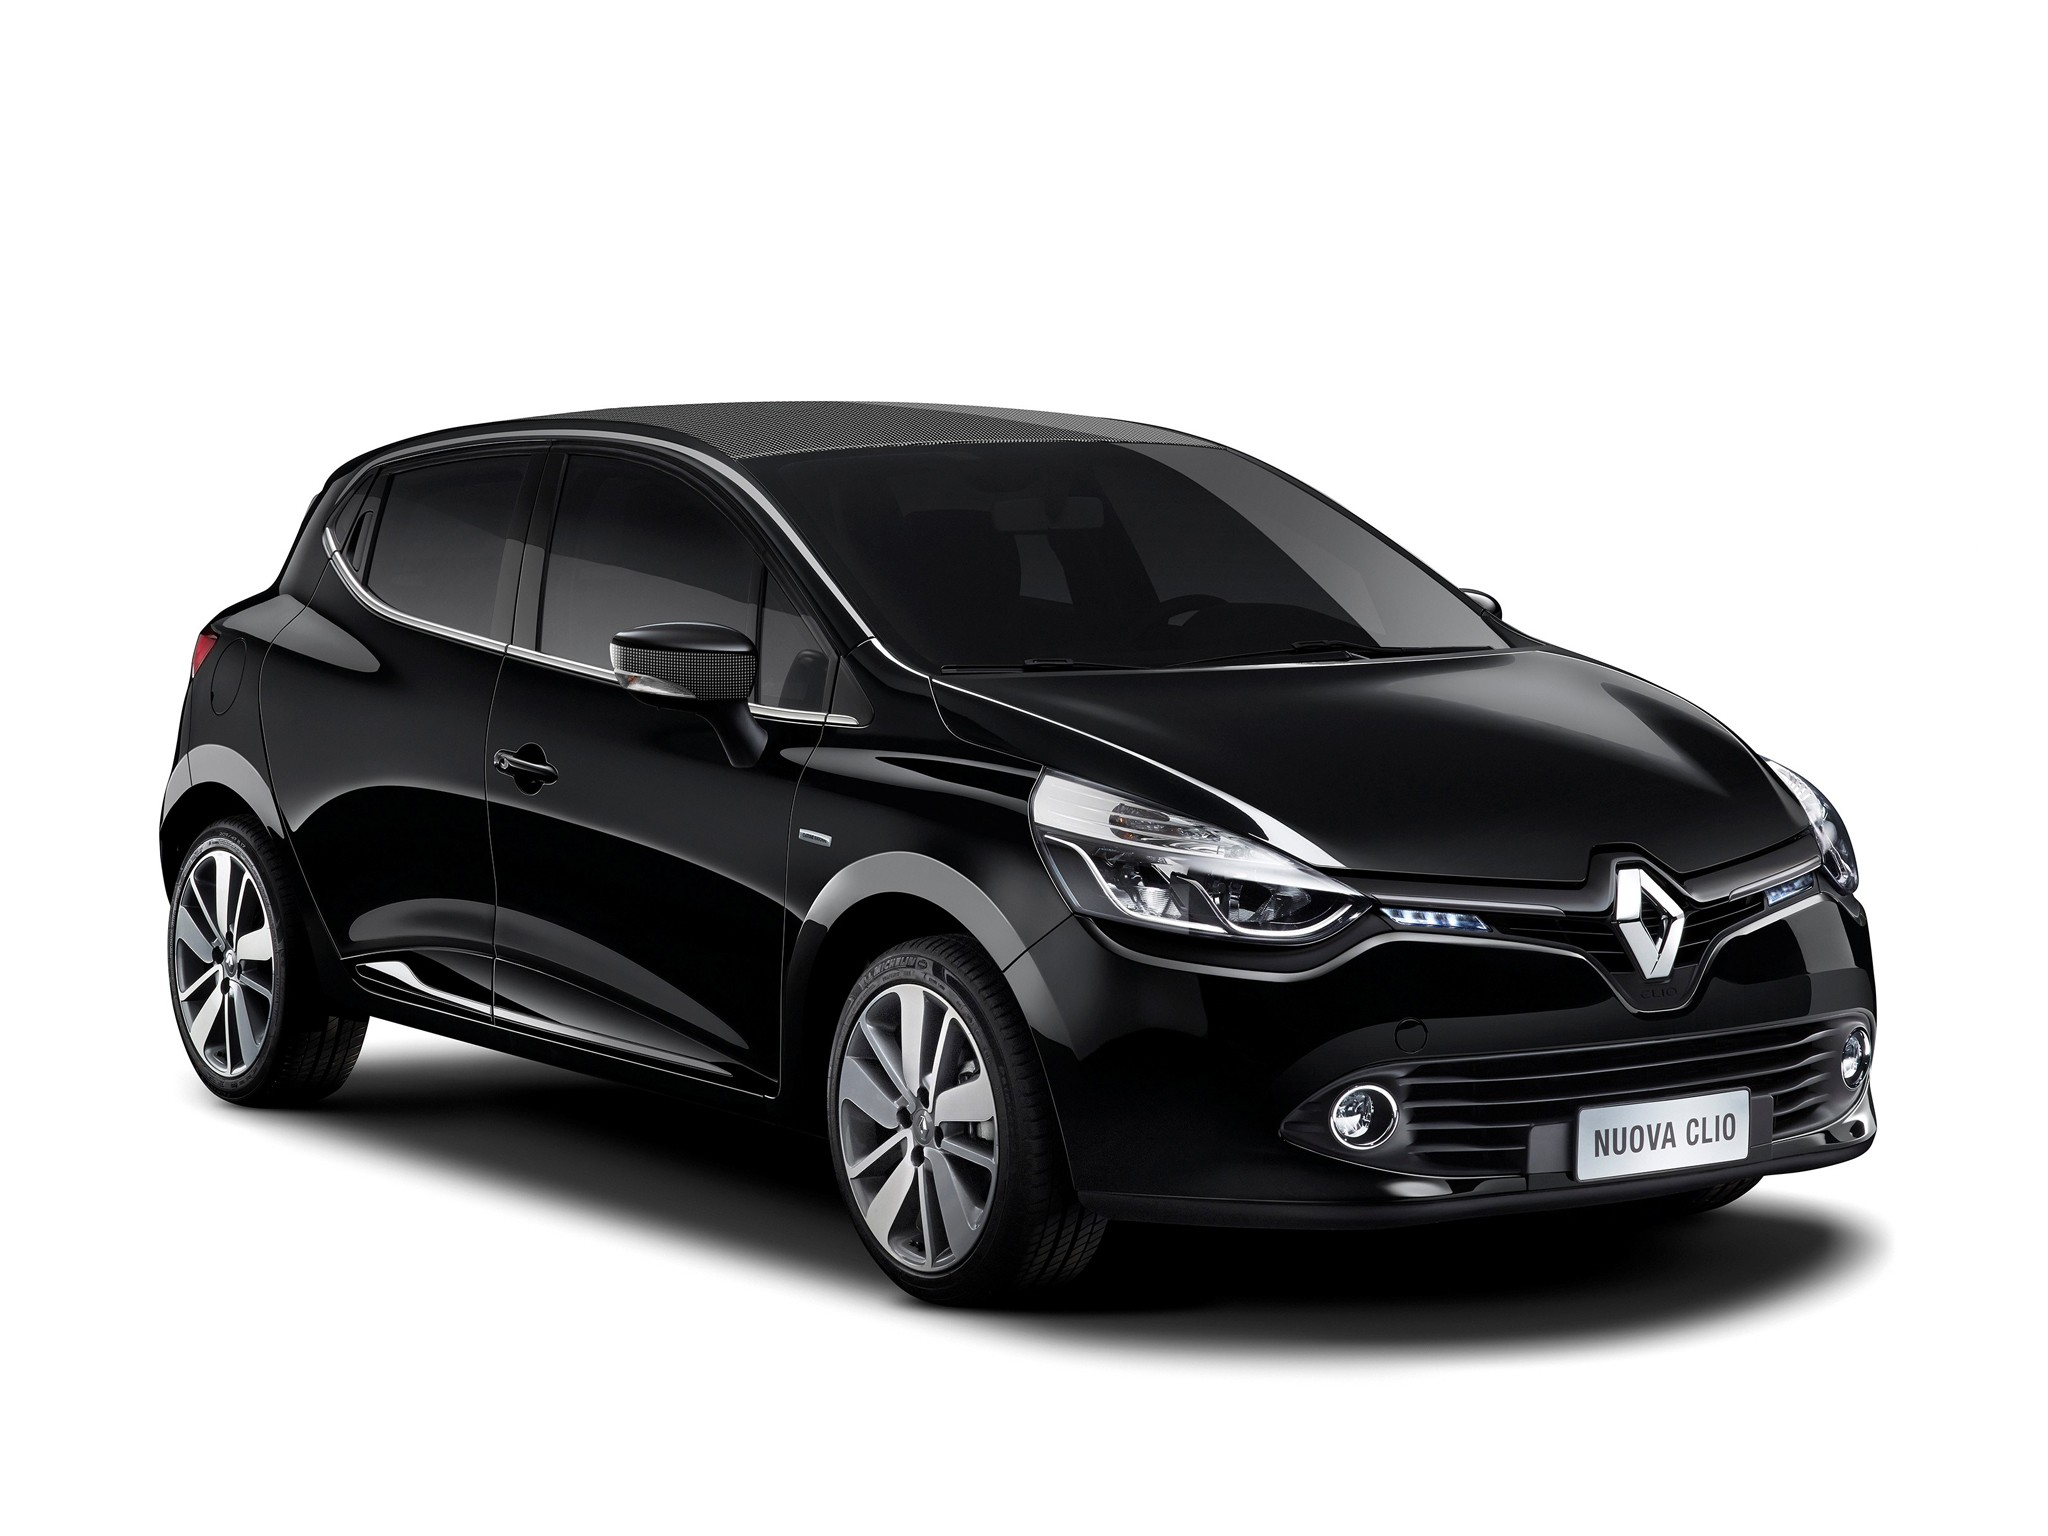 renault clio 5 doors specs photos 2012 2013 2014 2015 2016 autoevolution. Black Bedroom Furniture Sets. Home Design Ideas